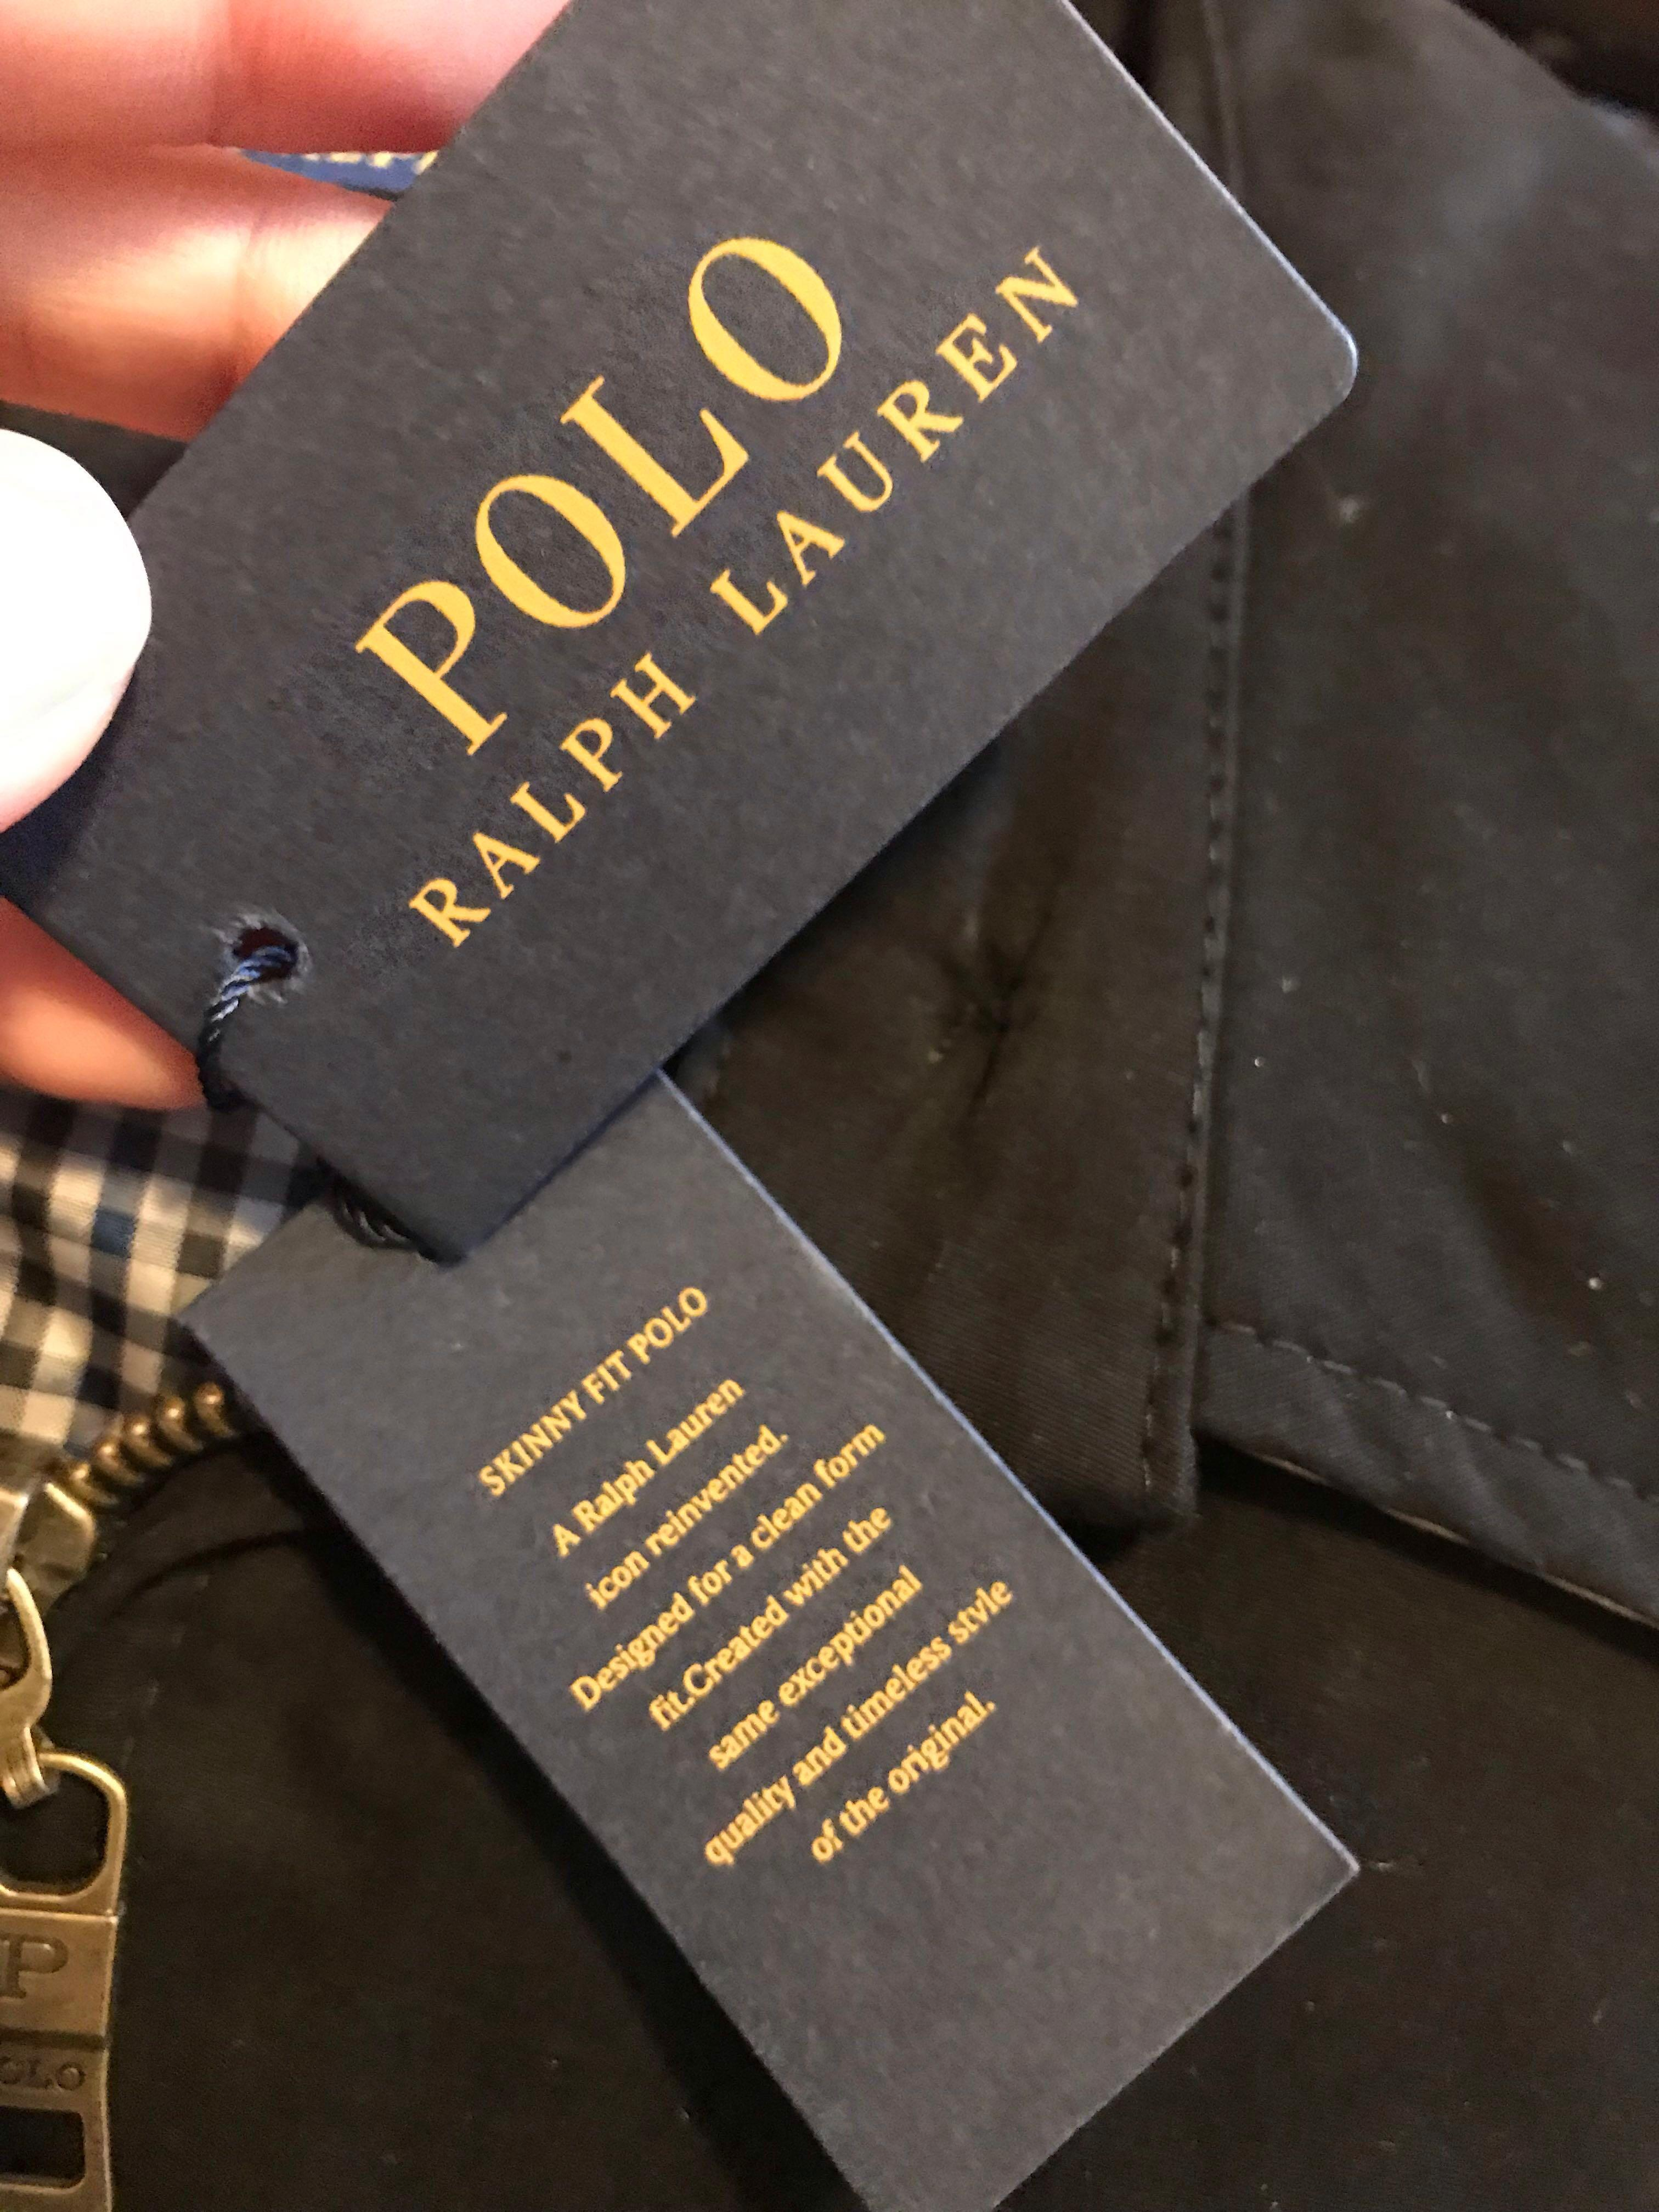 Brand new Ralph Lauren jacket bought from the states